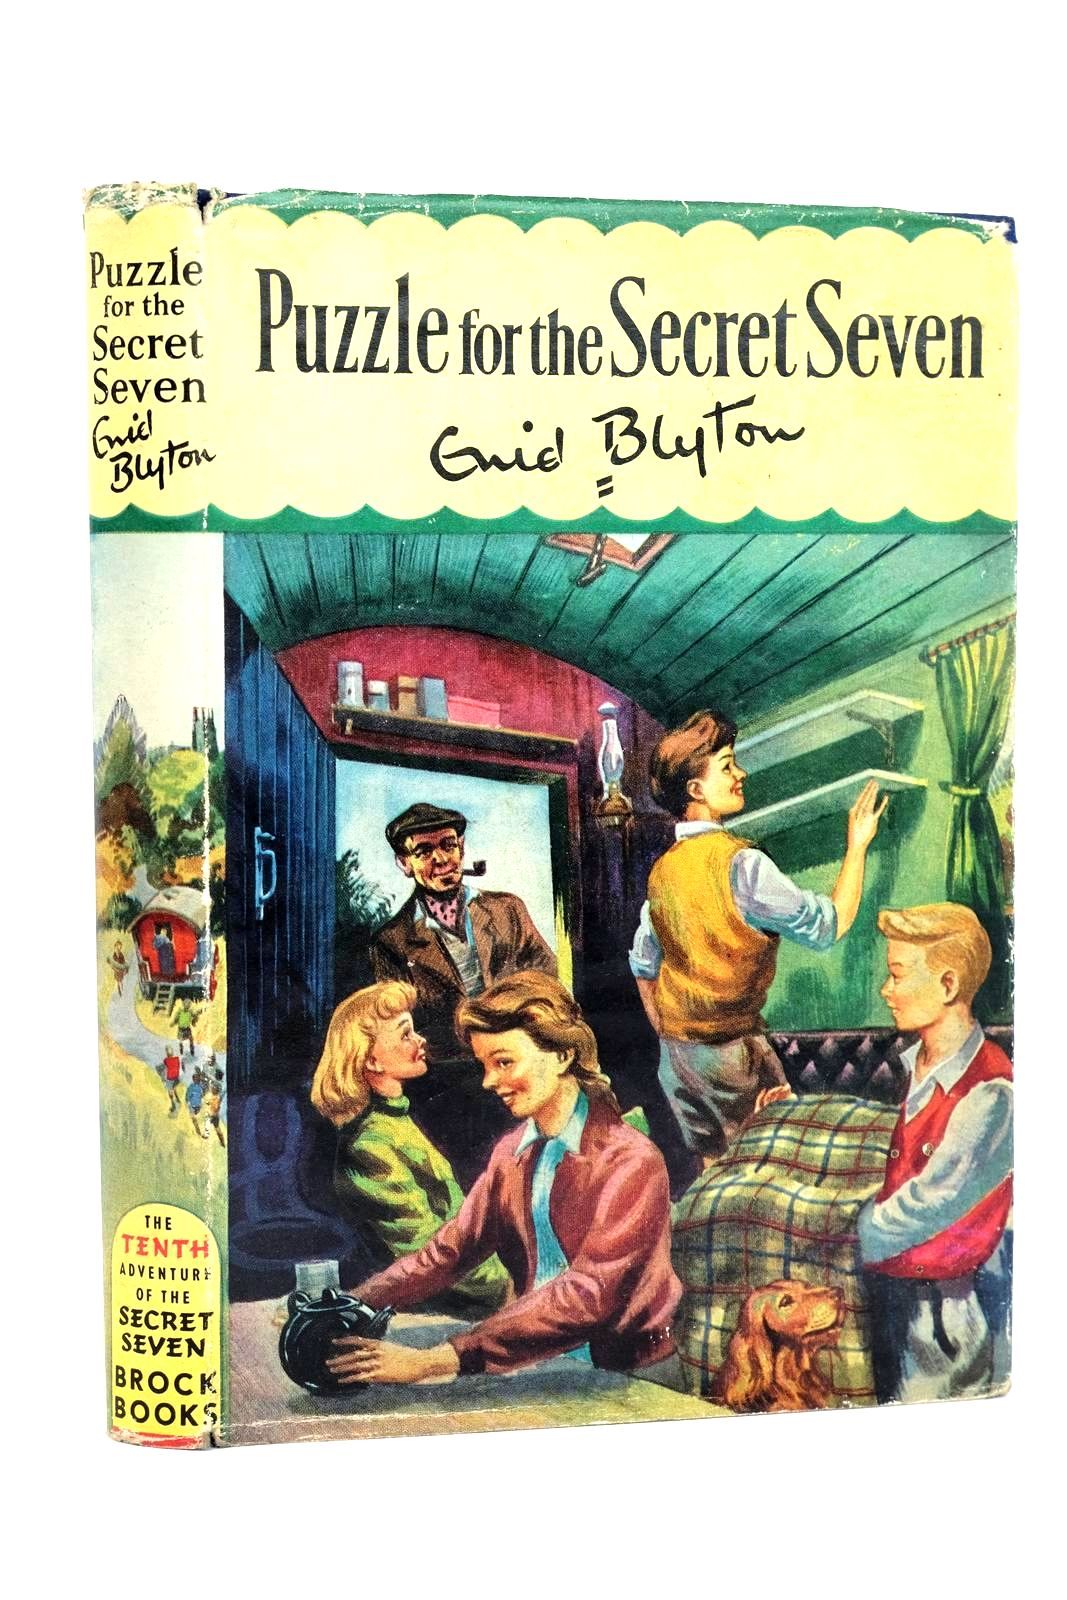 Photo of PUZZLE FOR THE SECRET SEVEN written by Blyton, Enid illustrated by Sharrocks, Burgess published by Brockhampton Press (STOCK CODE: 1318546)  for sale by Stella & Rose's Books